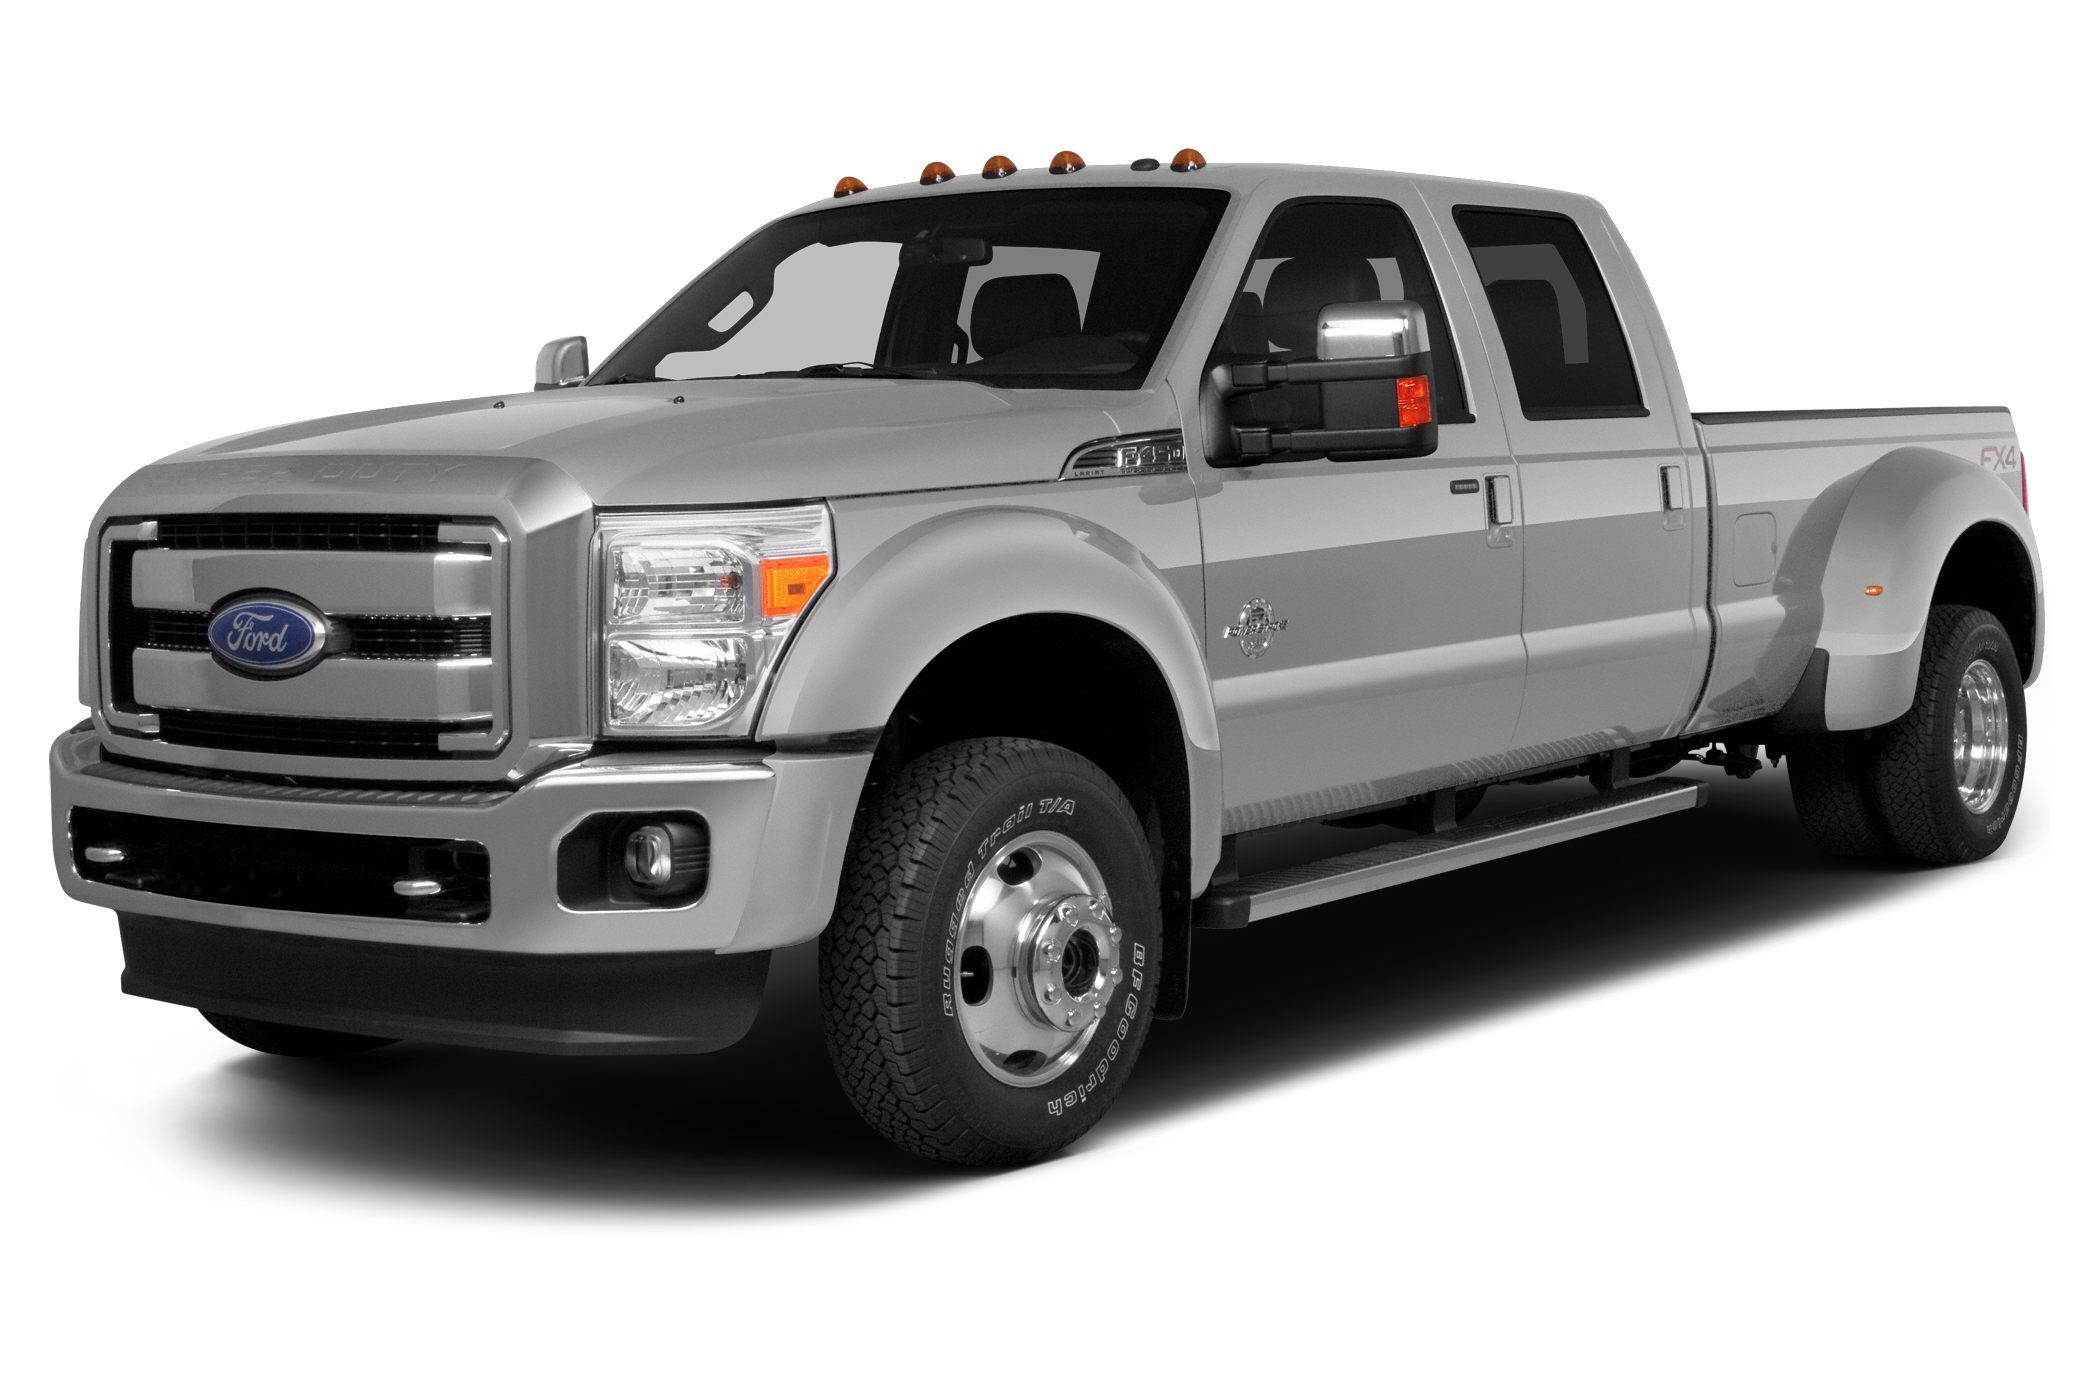 2015 Ford F450 XLT Crew Cab Pickup for sale in Quakertown for $45,761 with 10 miles.